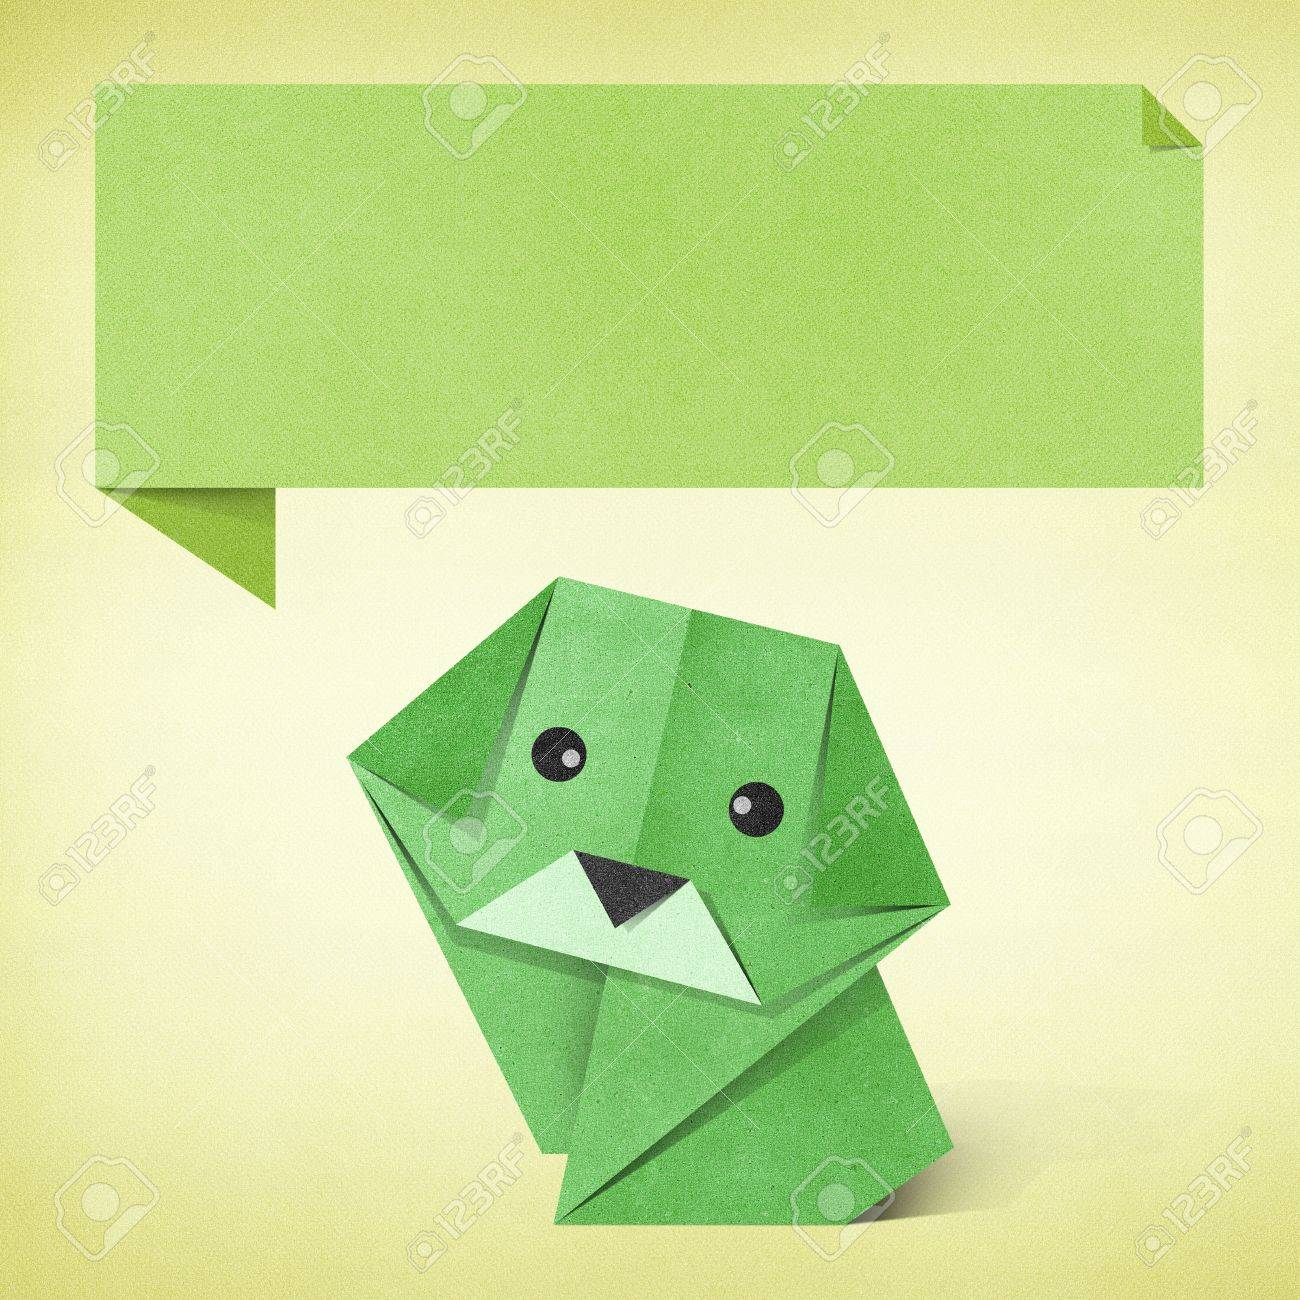 Origami Dog Recycled Paper Background Stock Photo Picture And